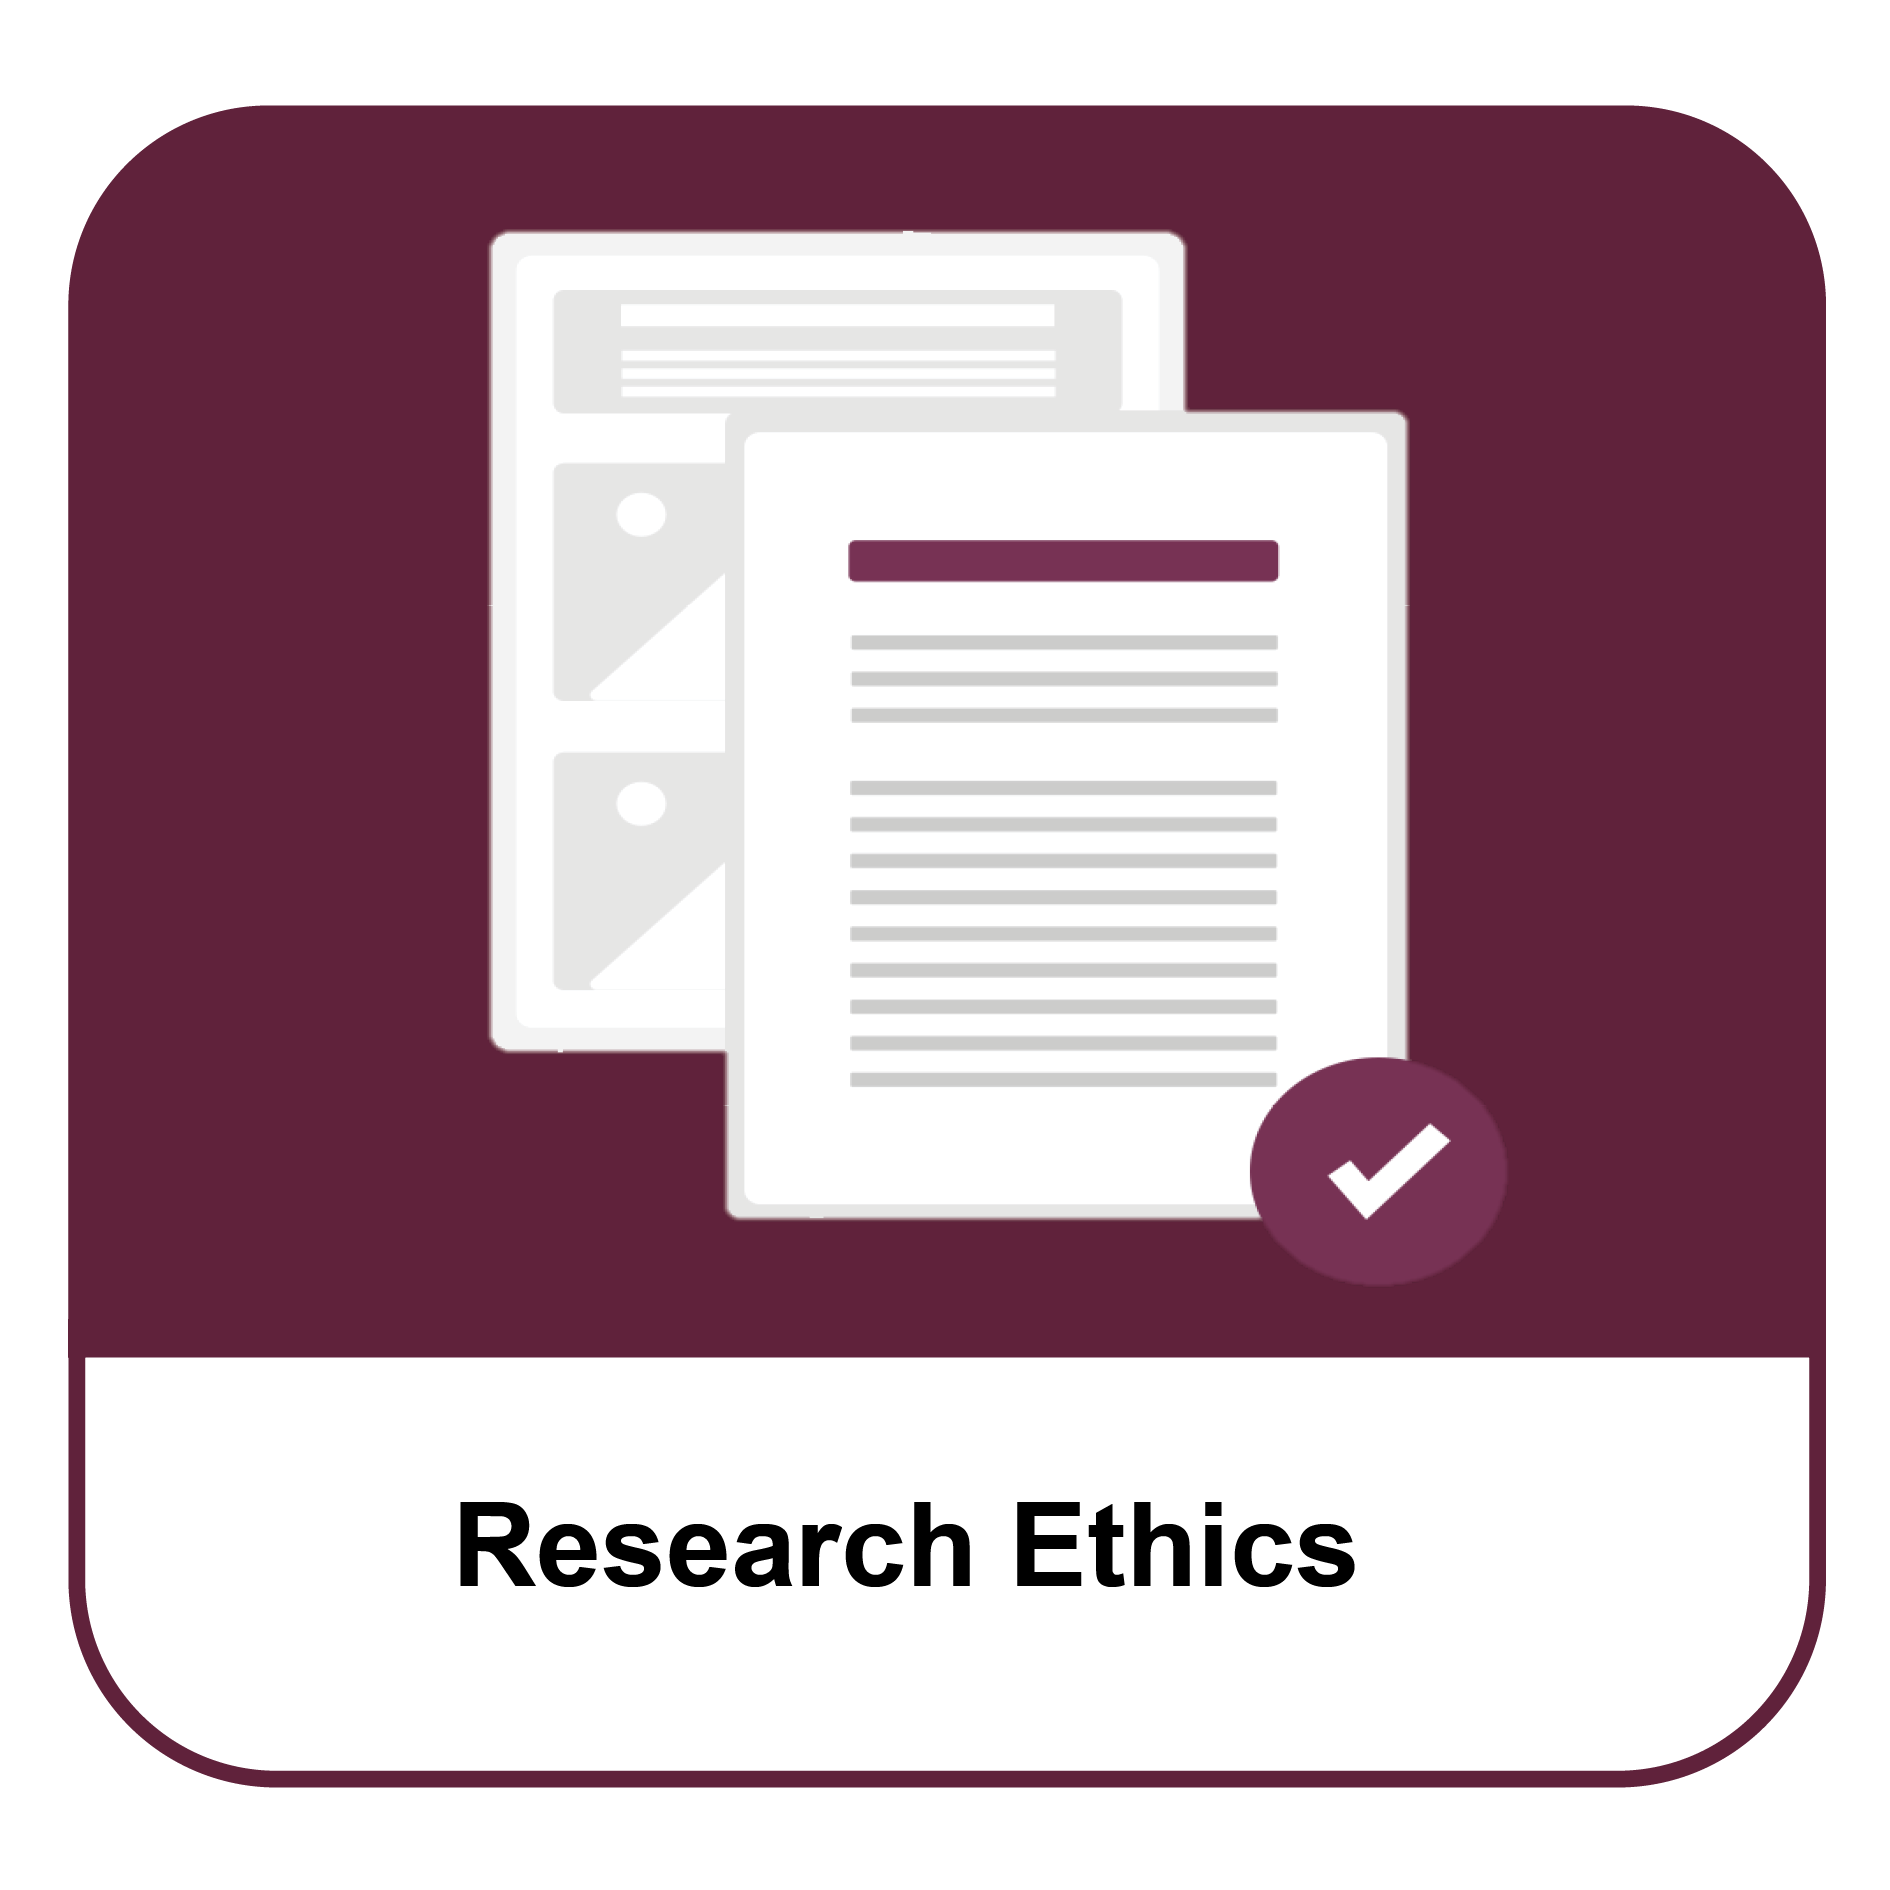 Research ethics updated icon resources.png